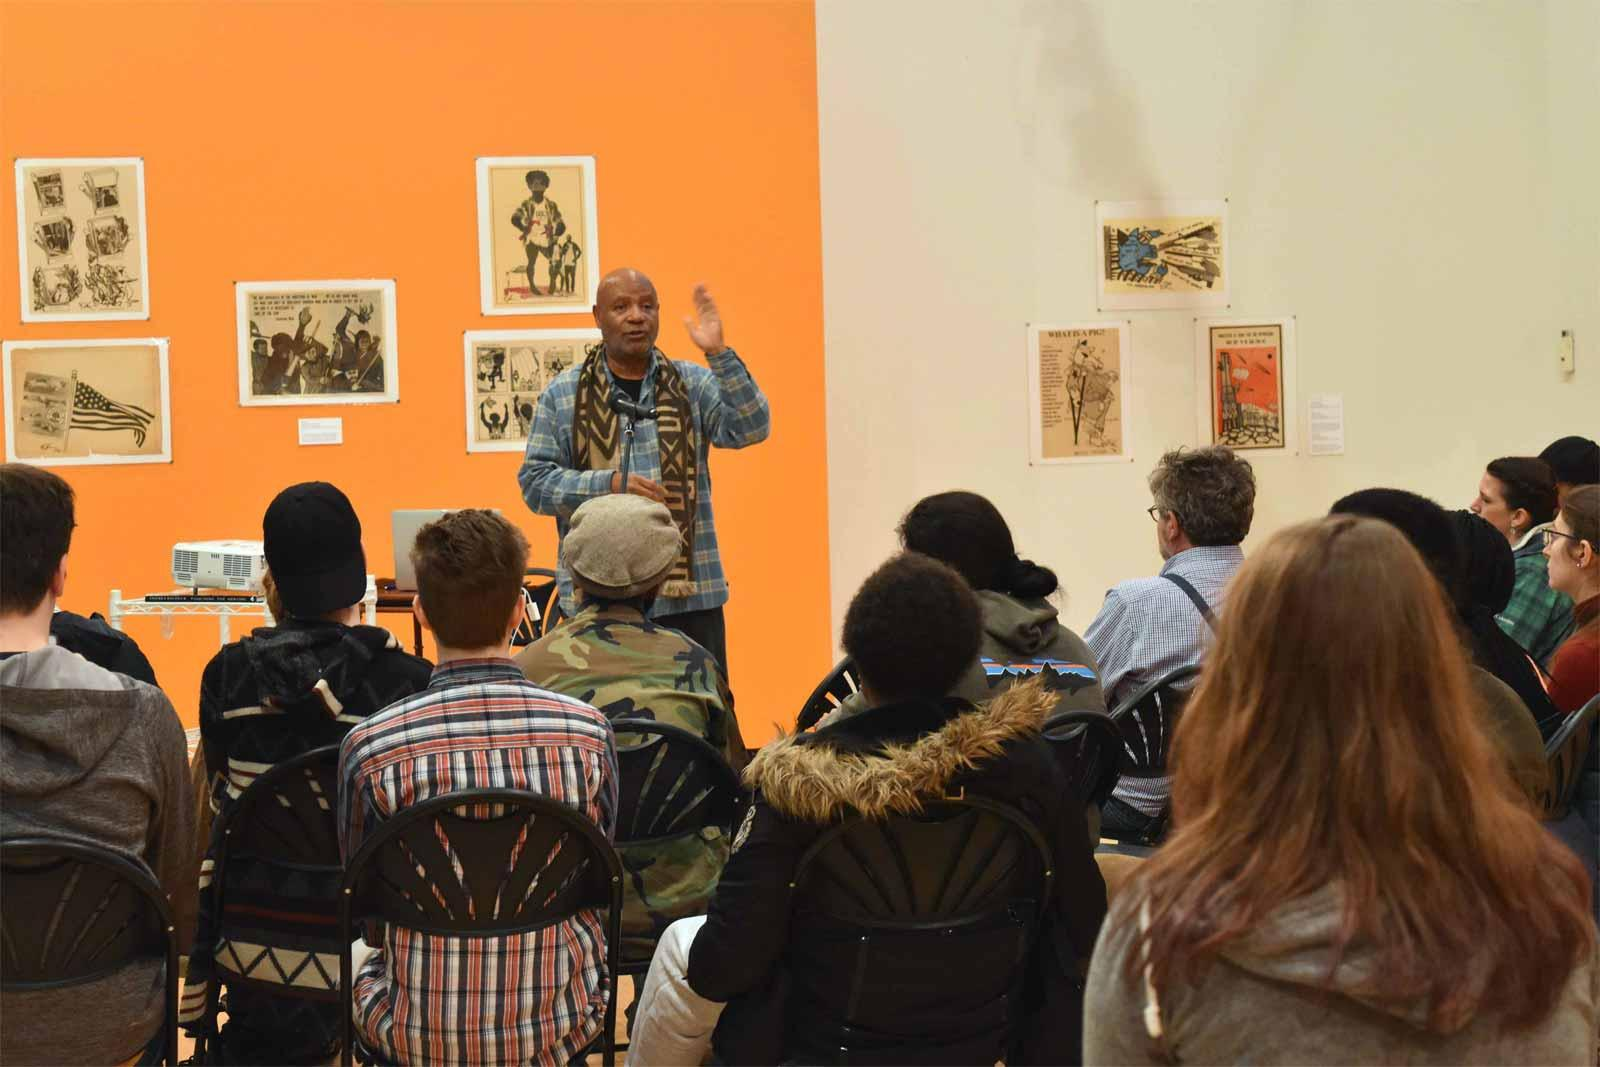 Emory Douglas in conversation with students at the Denison Museum, 2018.